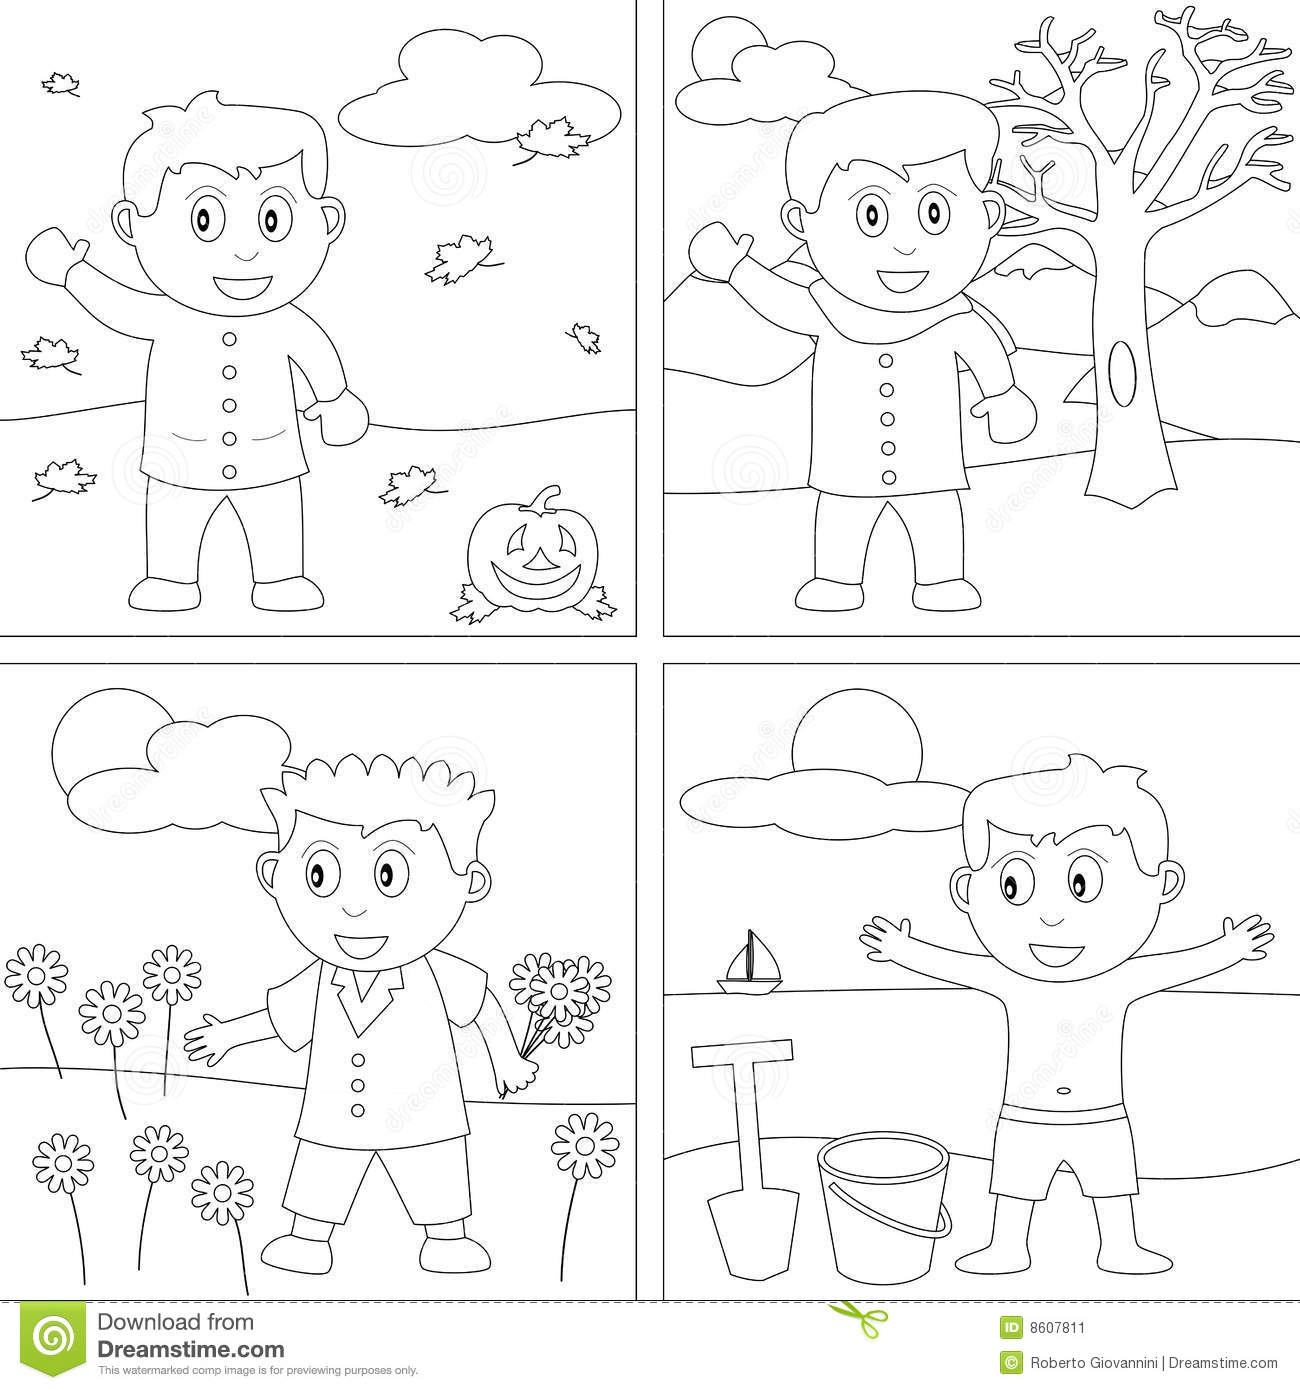 Seasons clipart black and white black and white Seasons clipart black and white 5 » Clipart Station black and white